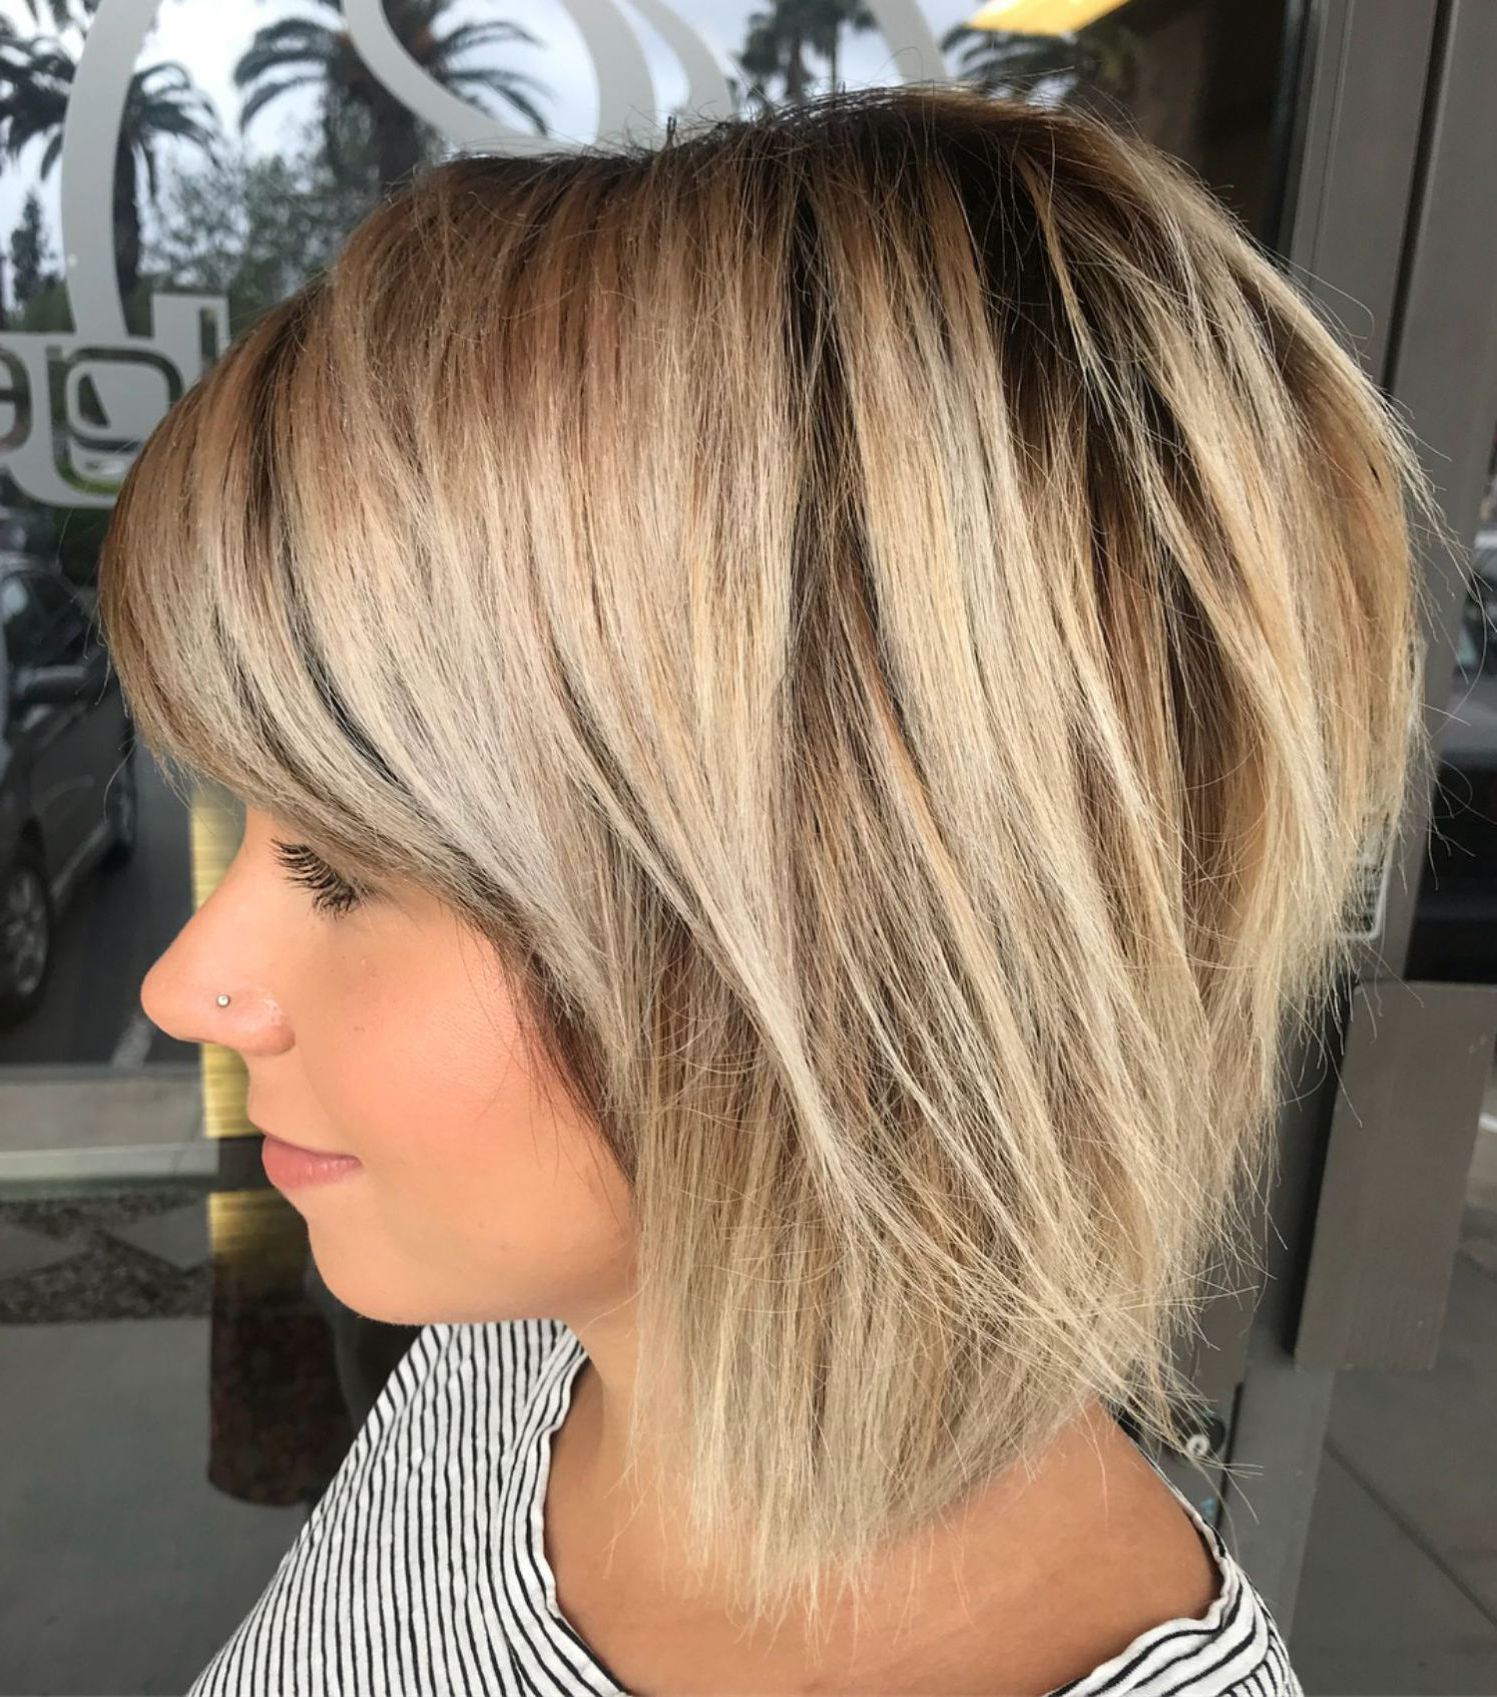 Hairstyles : Razored Blonde Bob Delightful 60 Beautiful And Pertaining To 2018 Razored Gray Bob Hairstyles With Bangs (View 13 of 20)